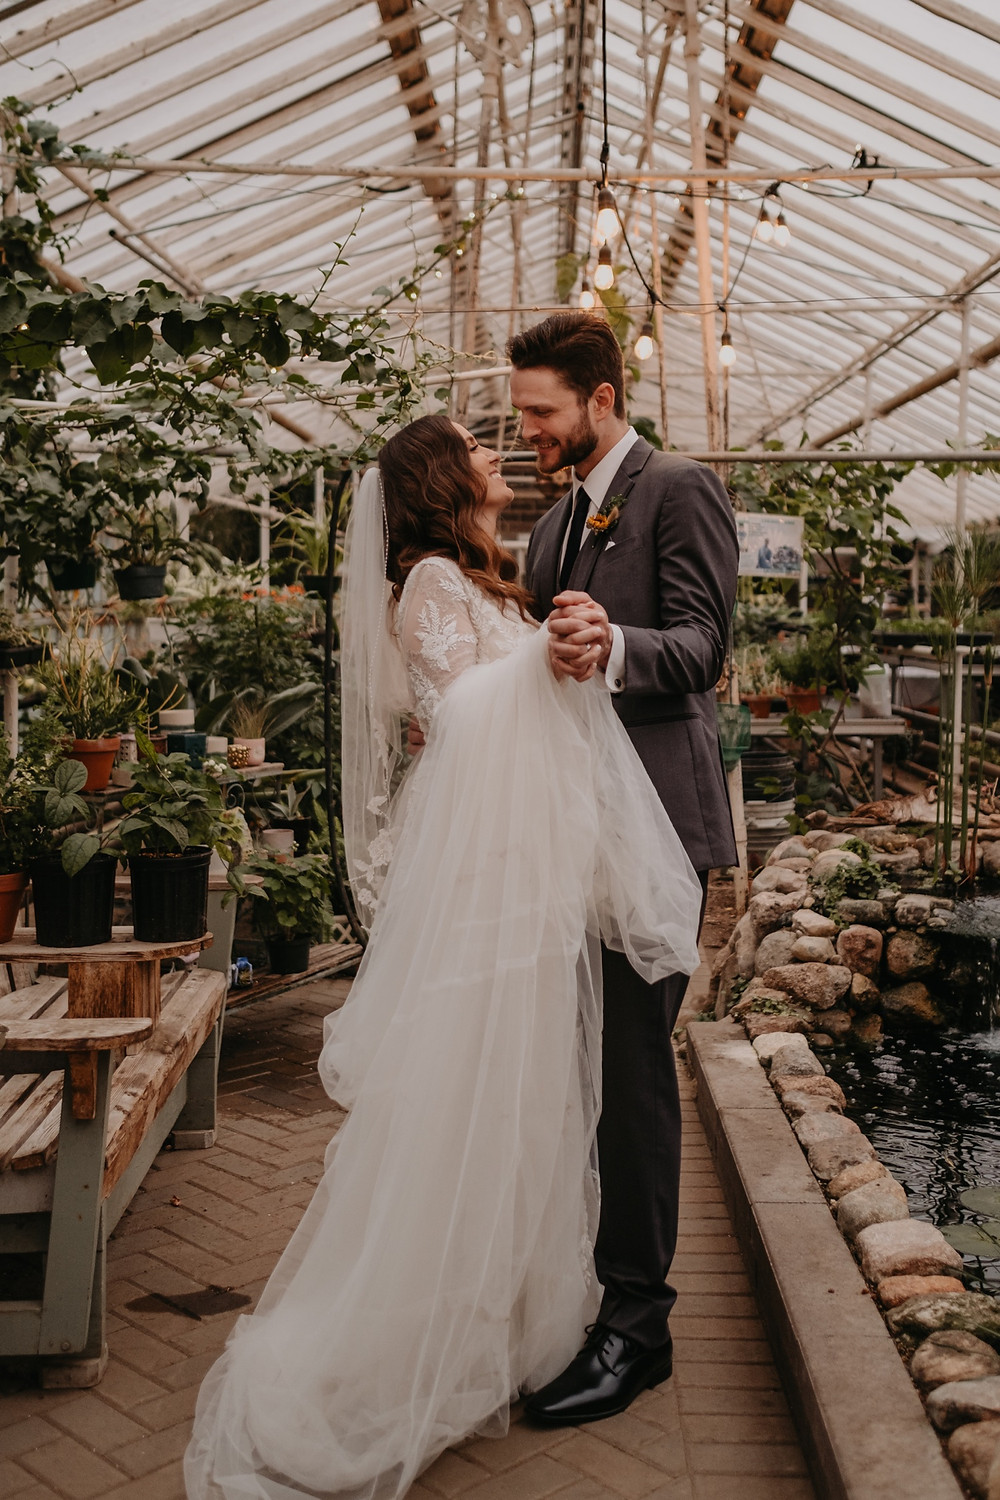 Dancing in greenhouse after wedding ceremony. Photographed by Nicole Leanne Photography.